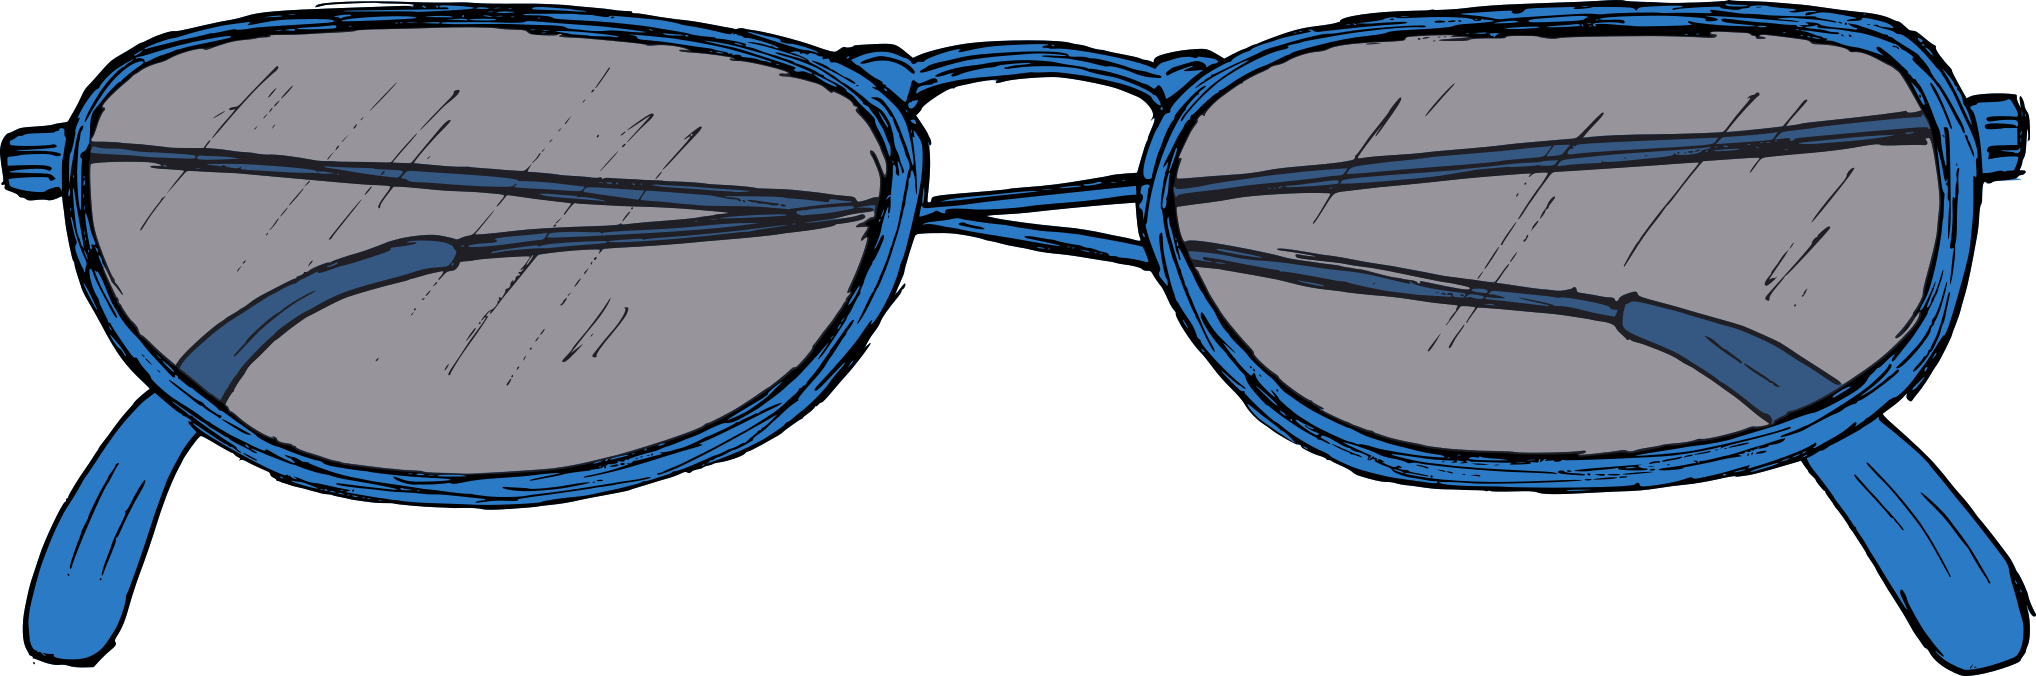 vintage-eye-glasses-drawing-4-1.png